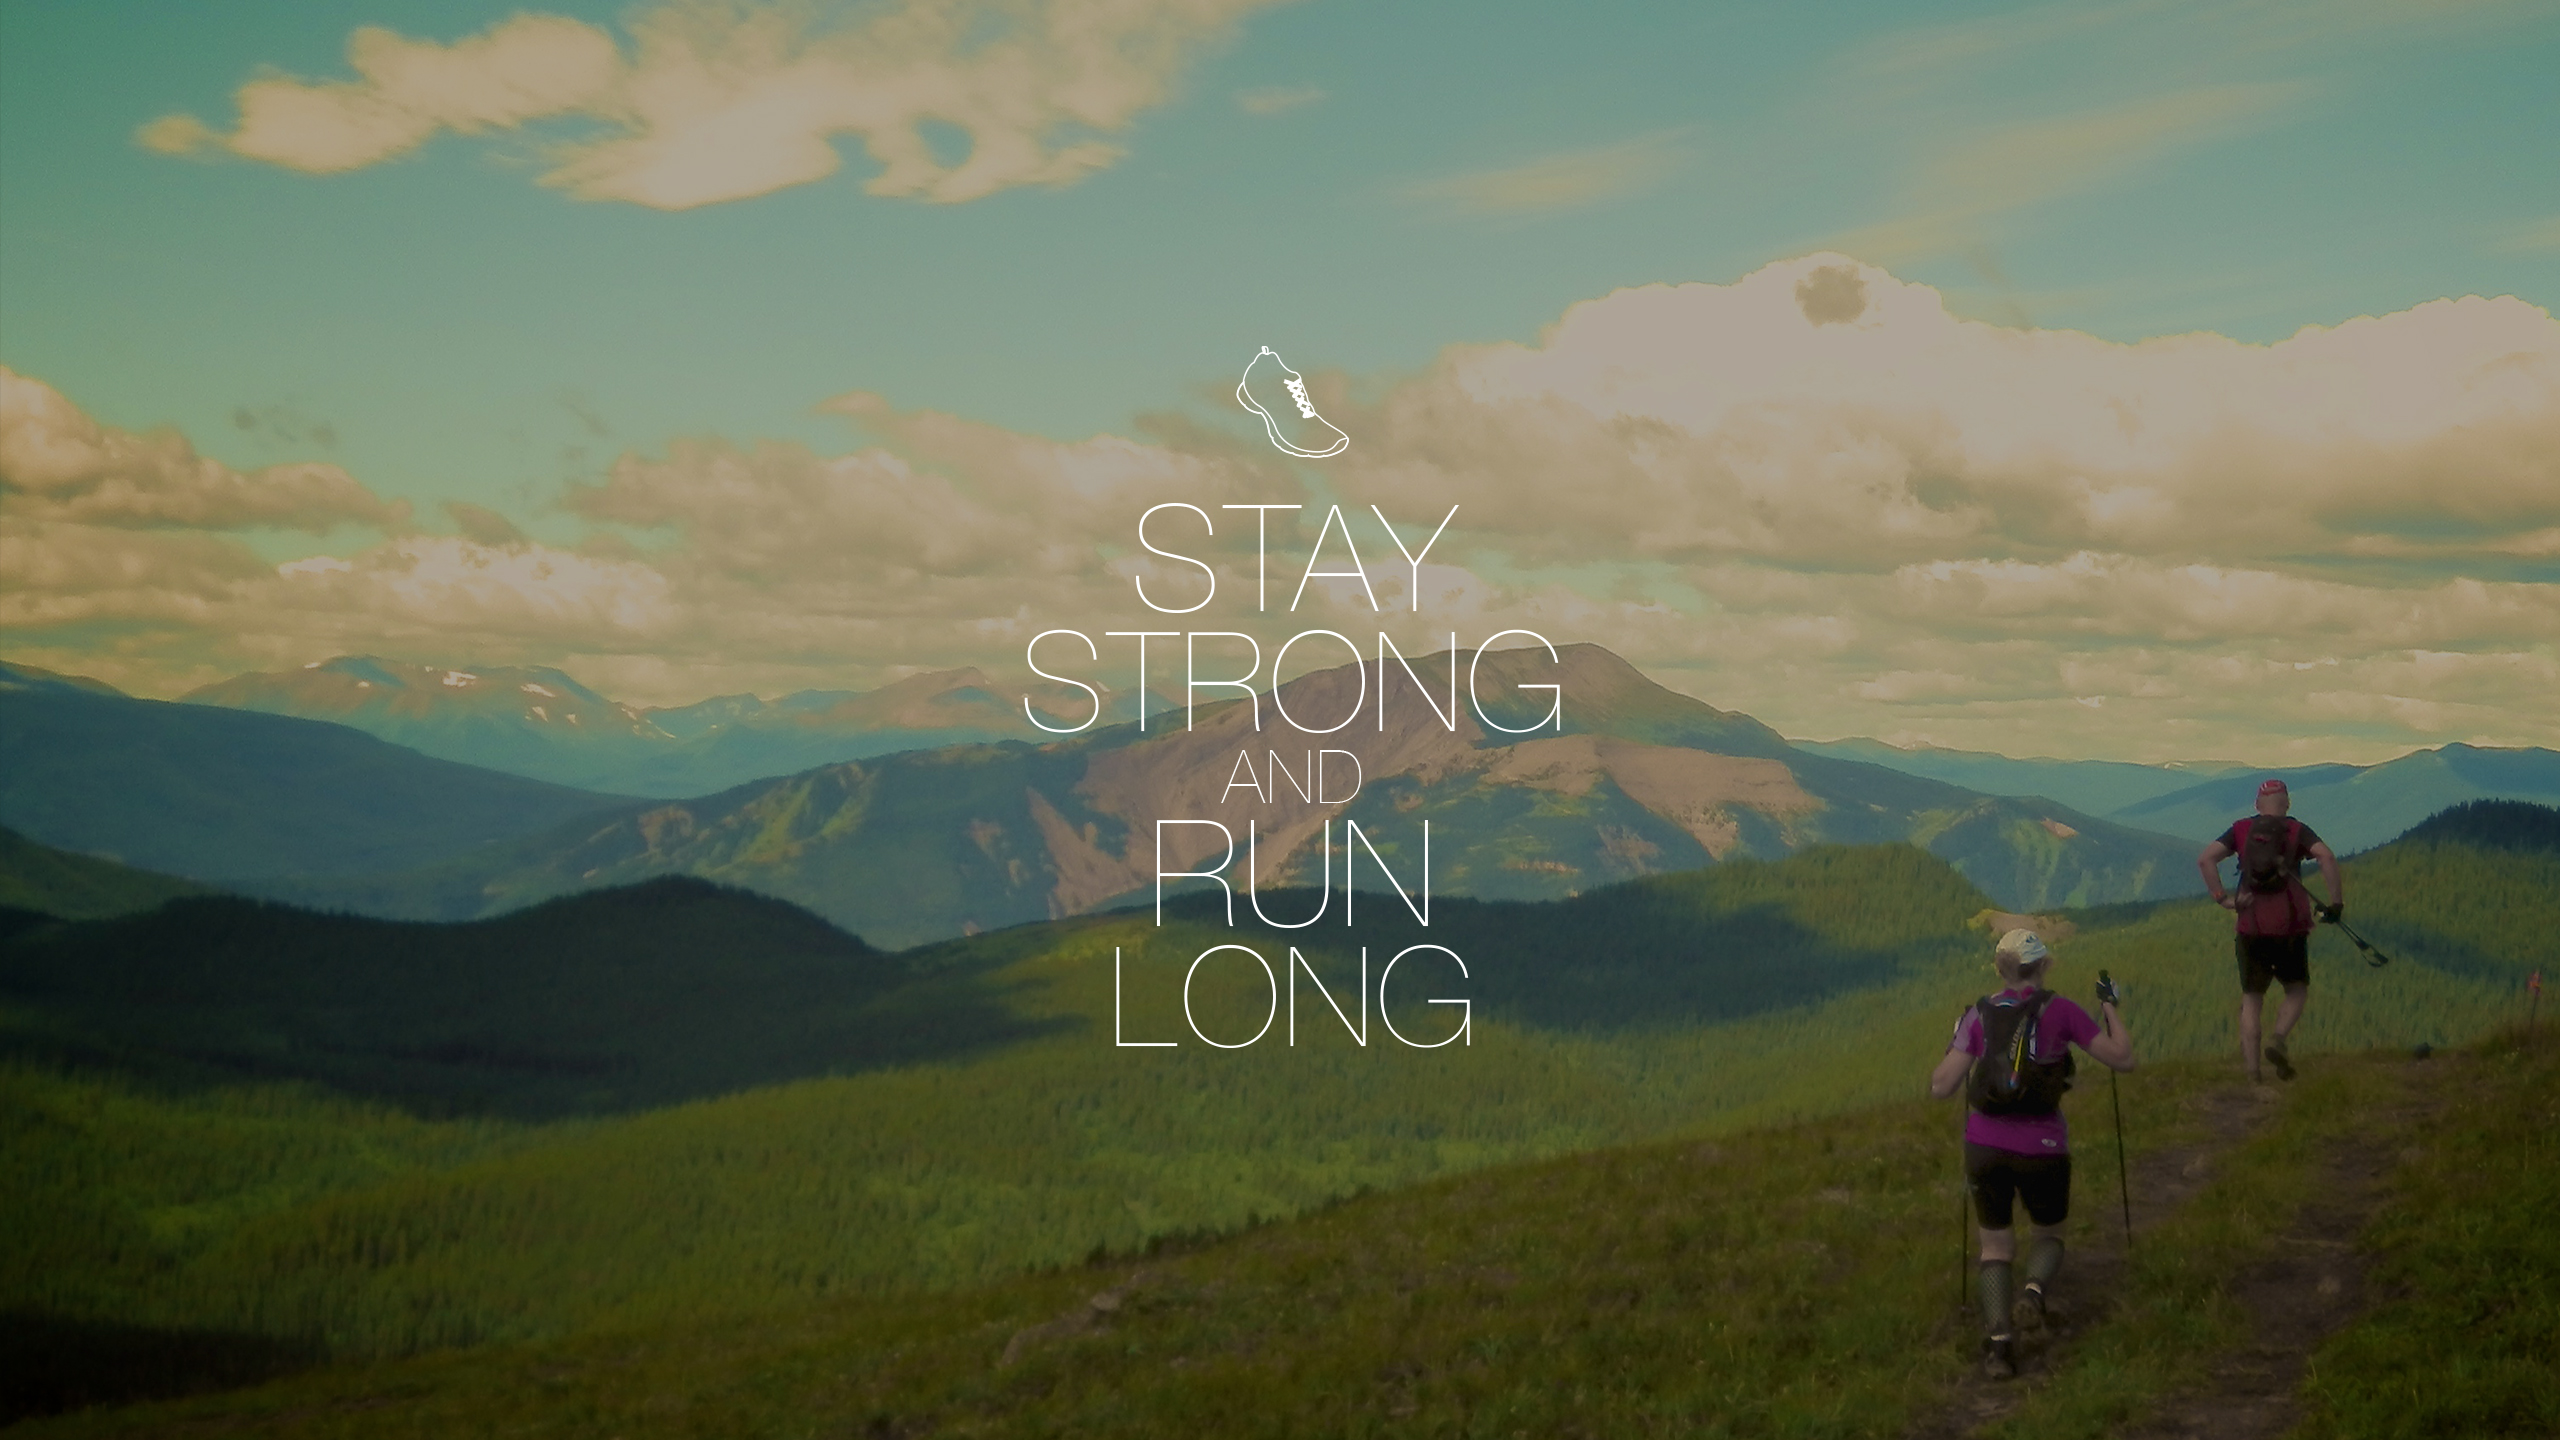 Best 57 Stay Strong Backgrounds on HipWallpaper Stay Weird 2560x1440